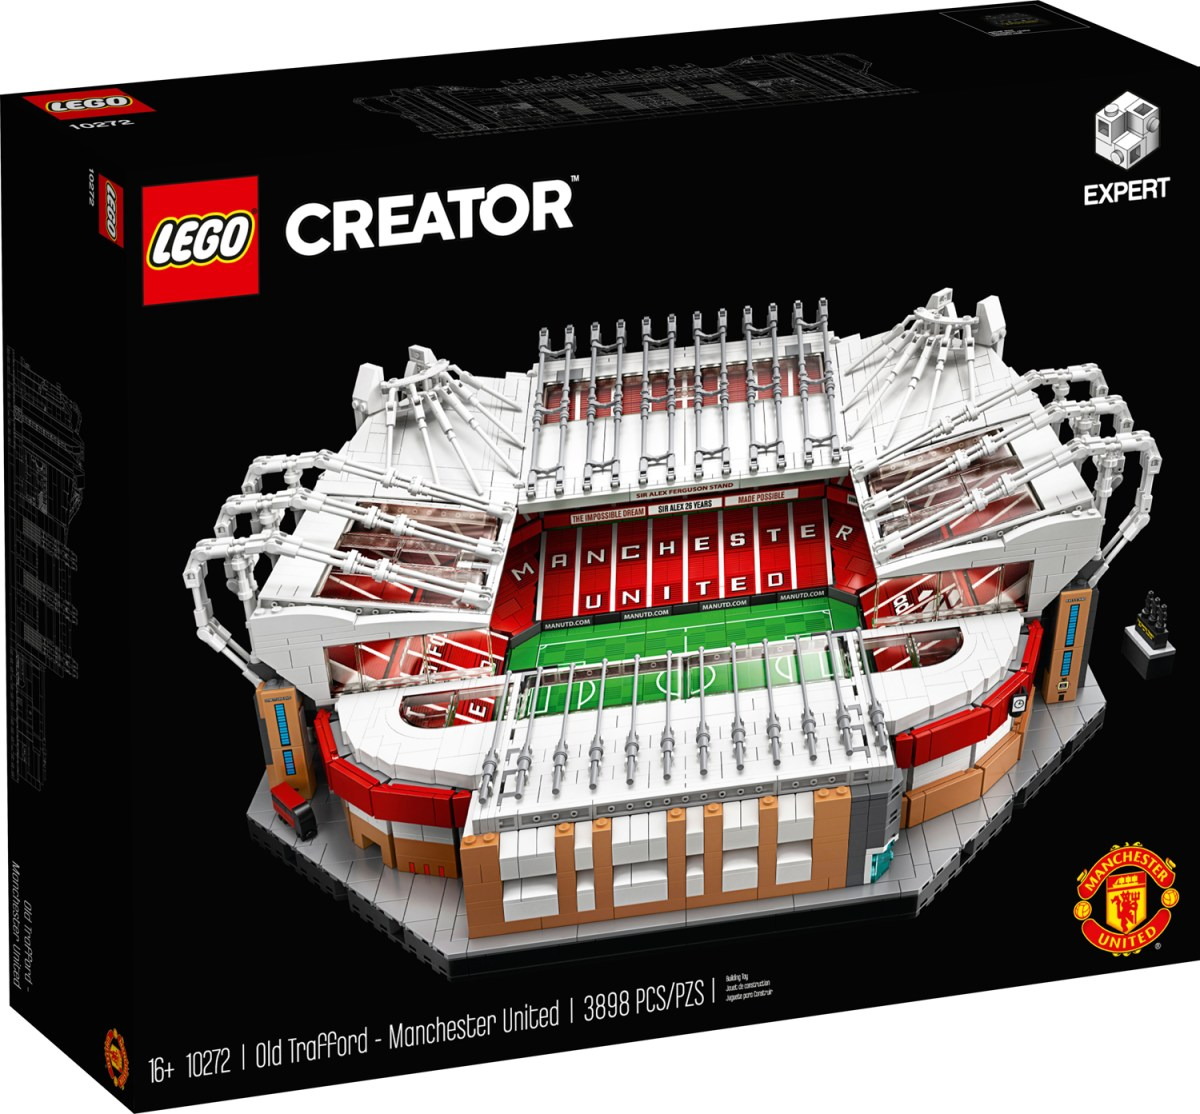 Celebrate 110 Years of Epic Football with the LEGO Creator Expert Old Trafford-Manchester United (10272) Set